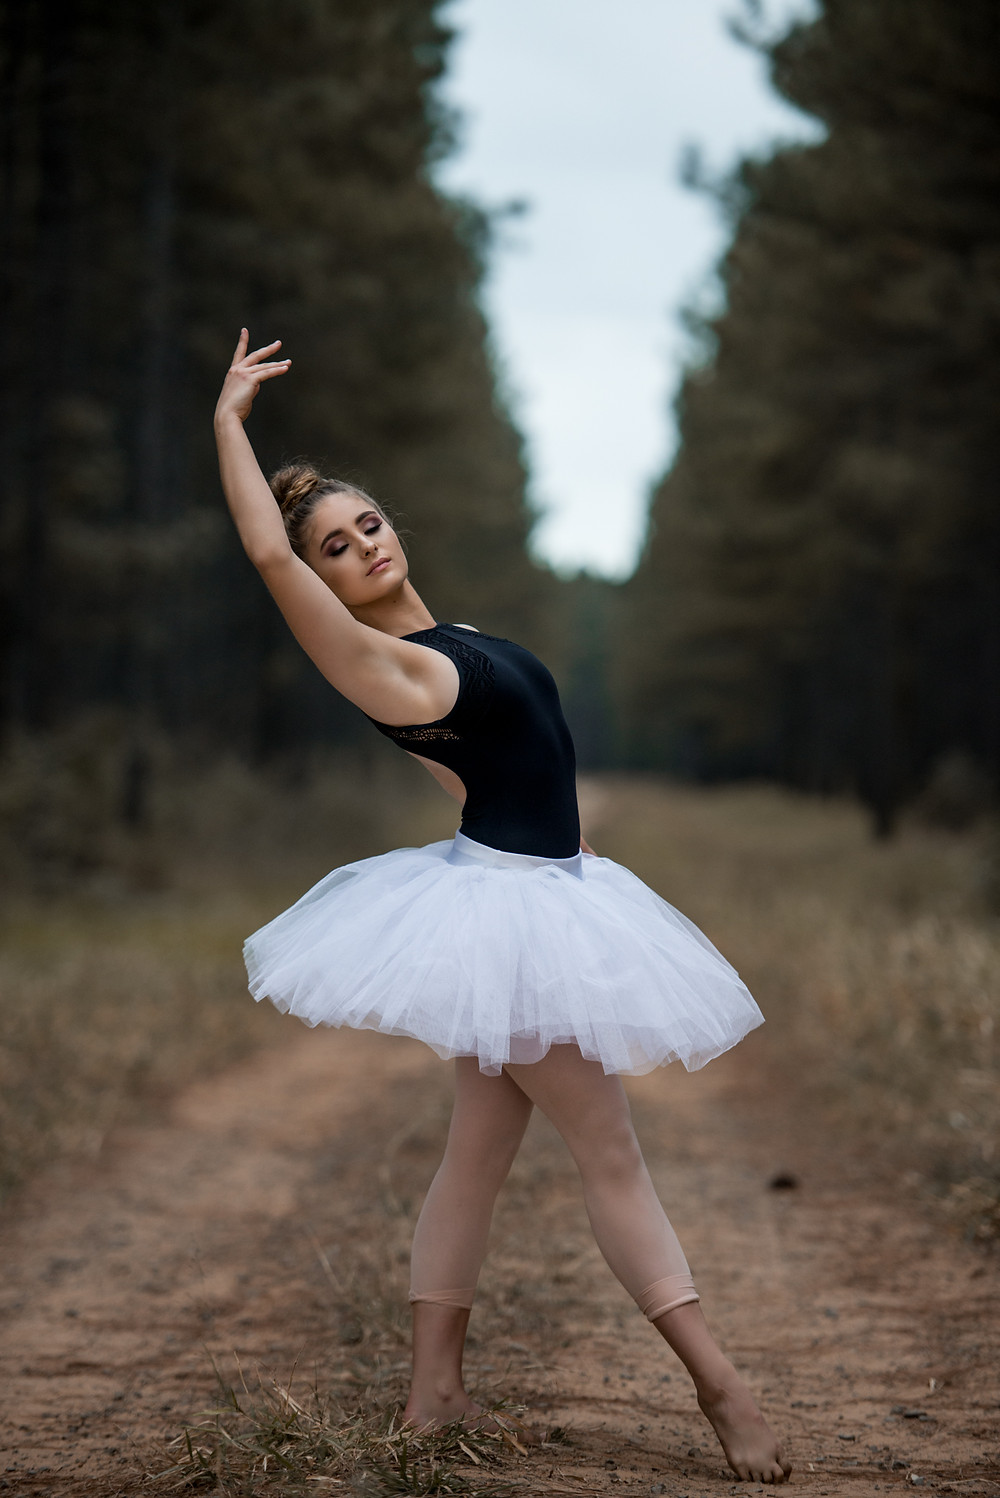 Jay Brosnan Photography | JBP | Brisbane Photographer | Sunshine Coast Photographer | Ballet Photographer | Ballerina